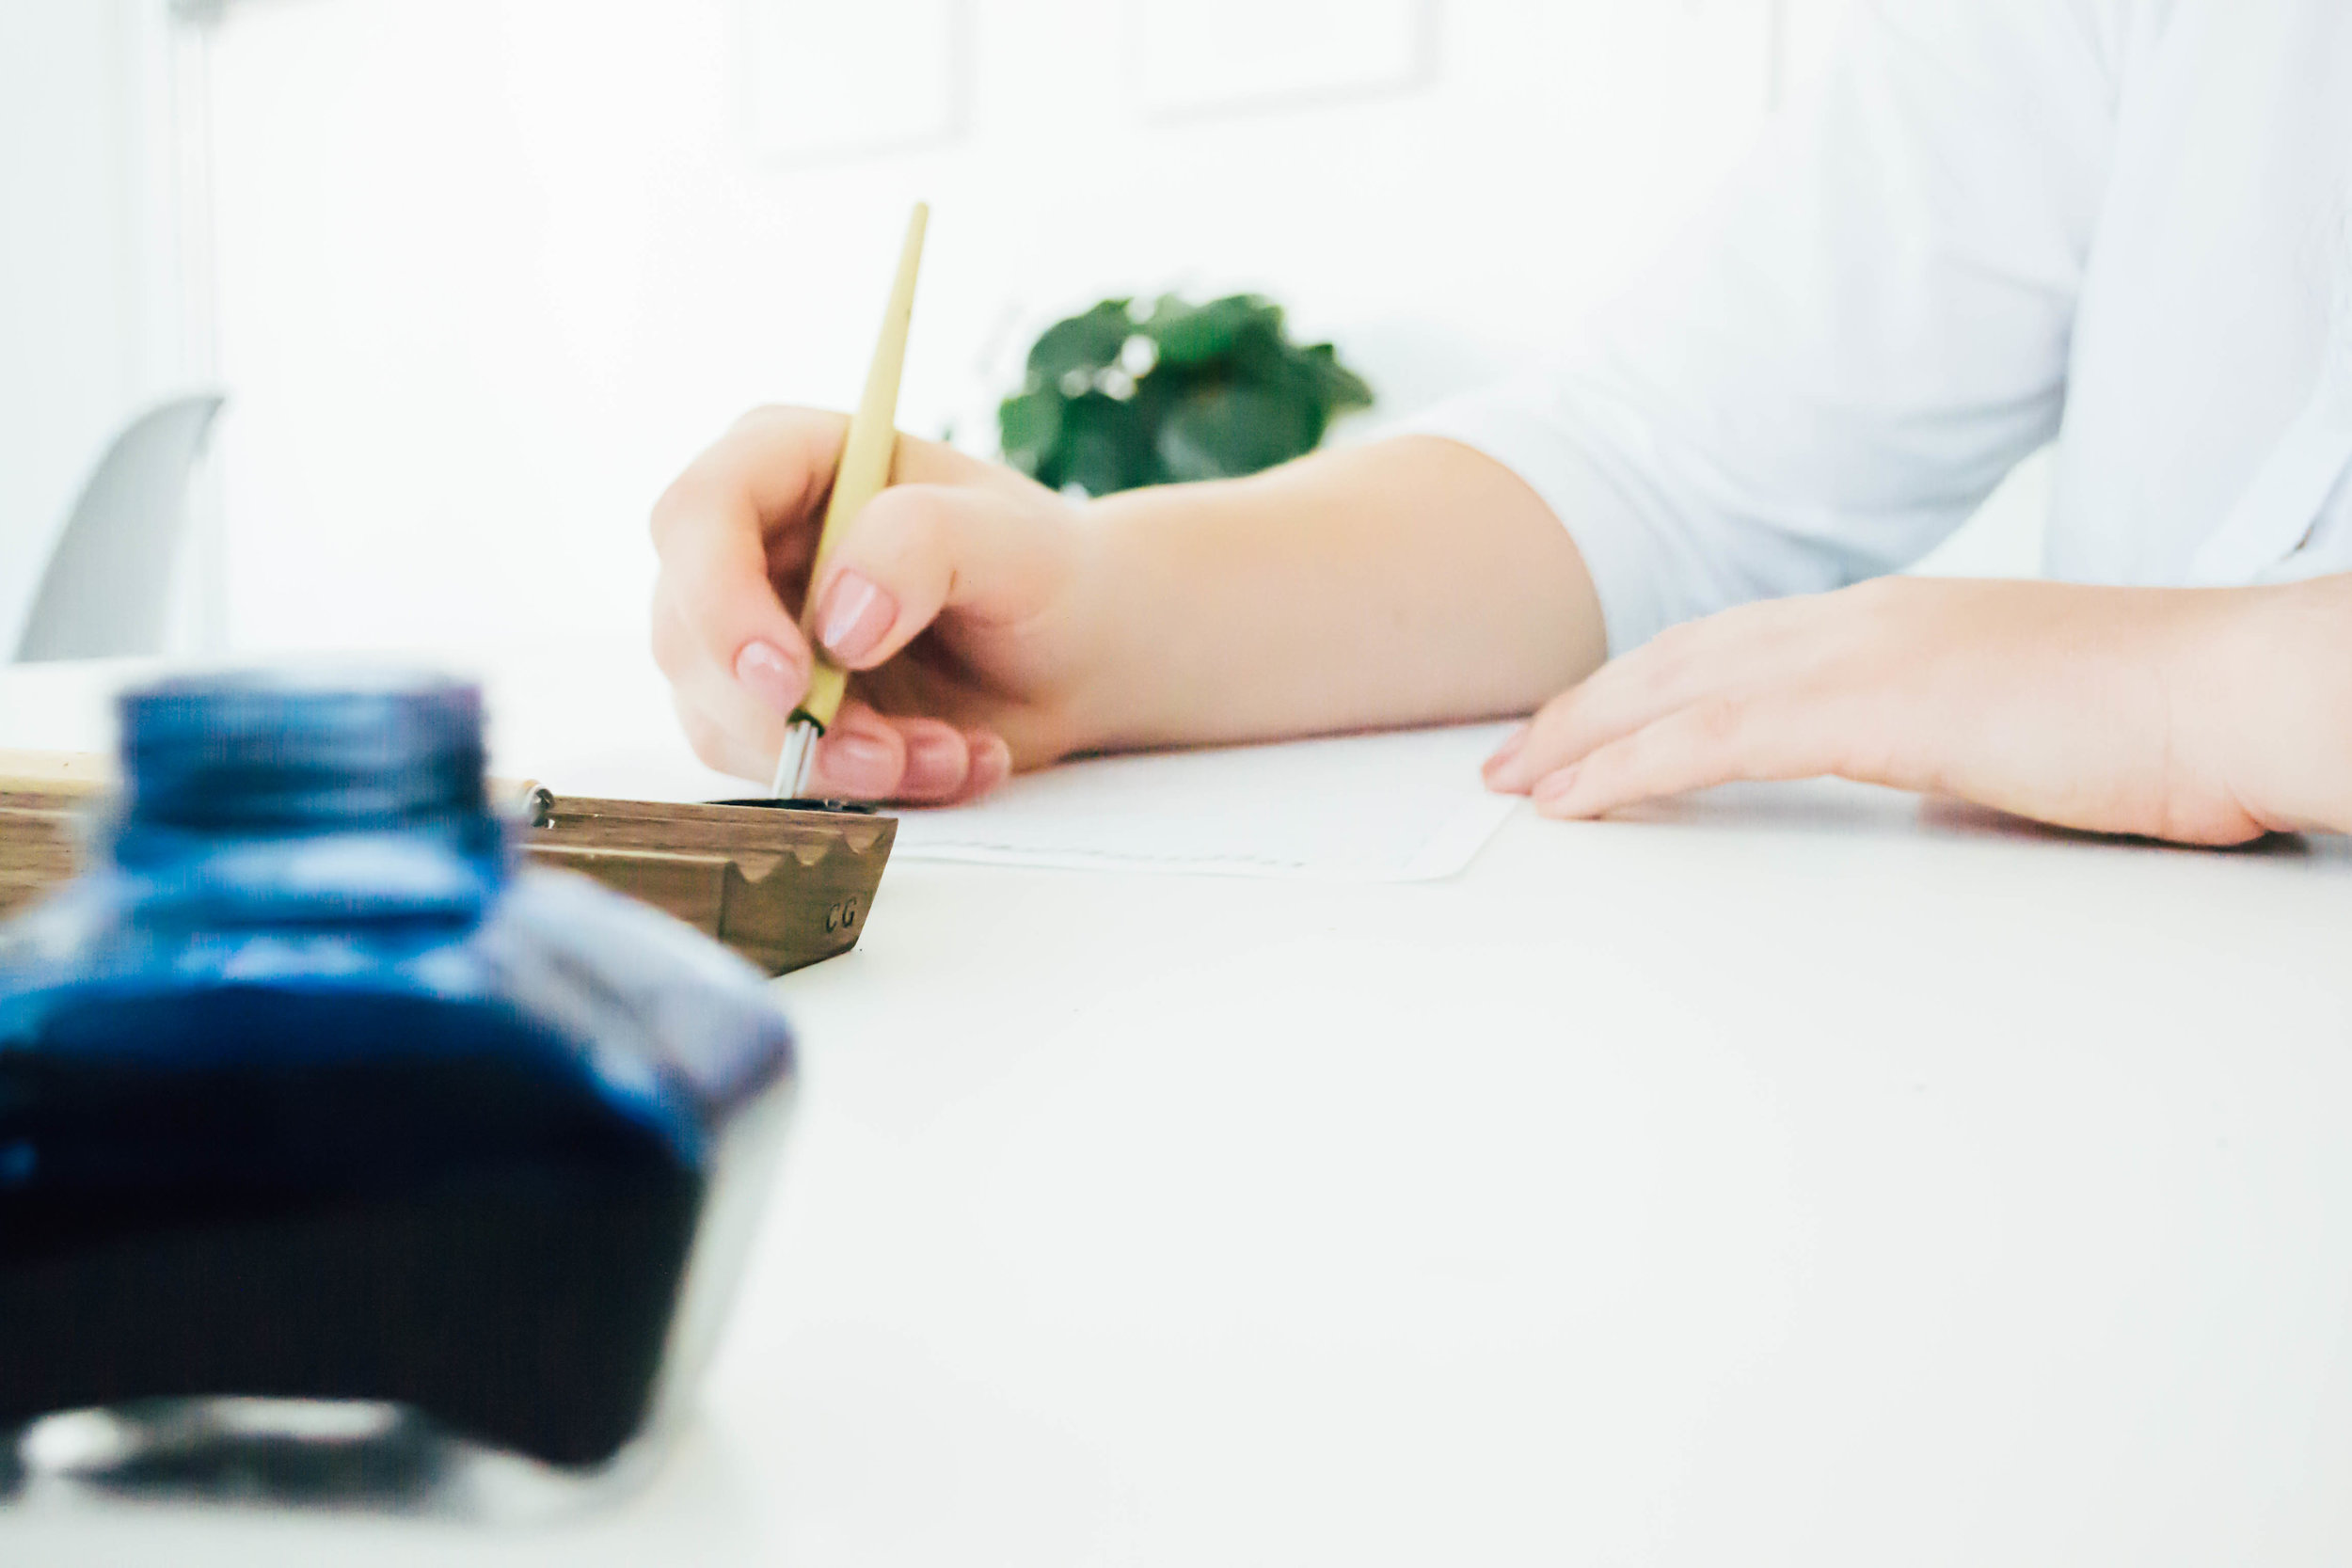 Let's Learn Calligraphy! - The beautiful art of calligraphy doesn't have to be overwhelming, intimidating, or just for